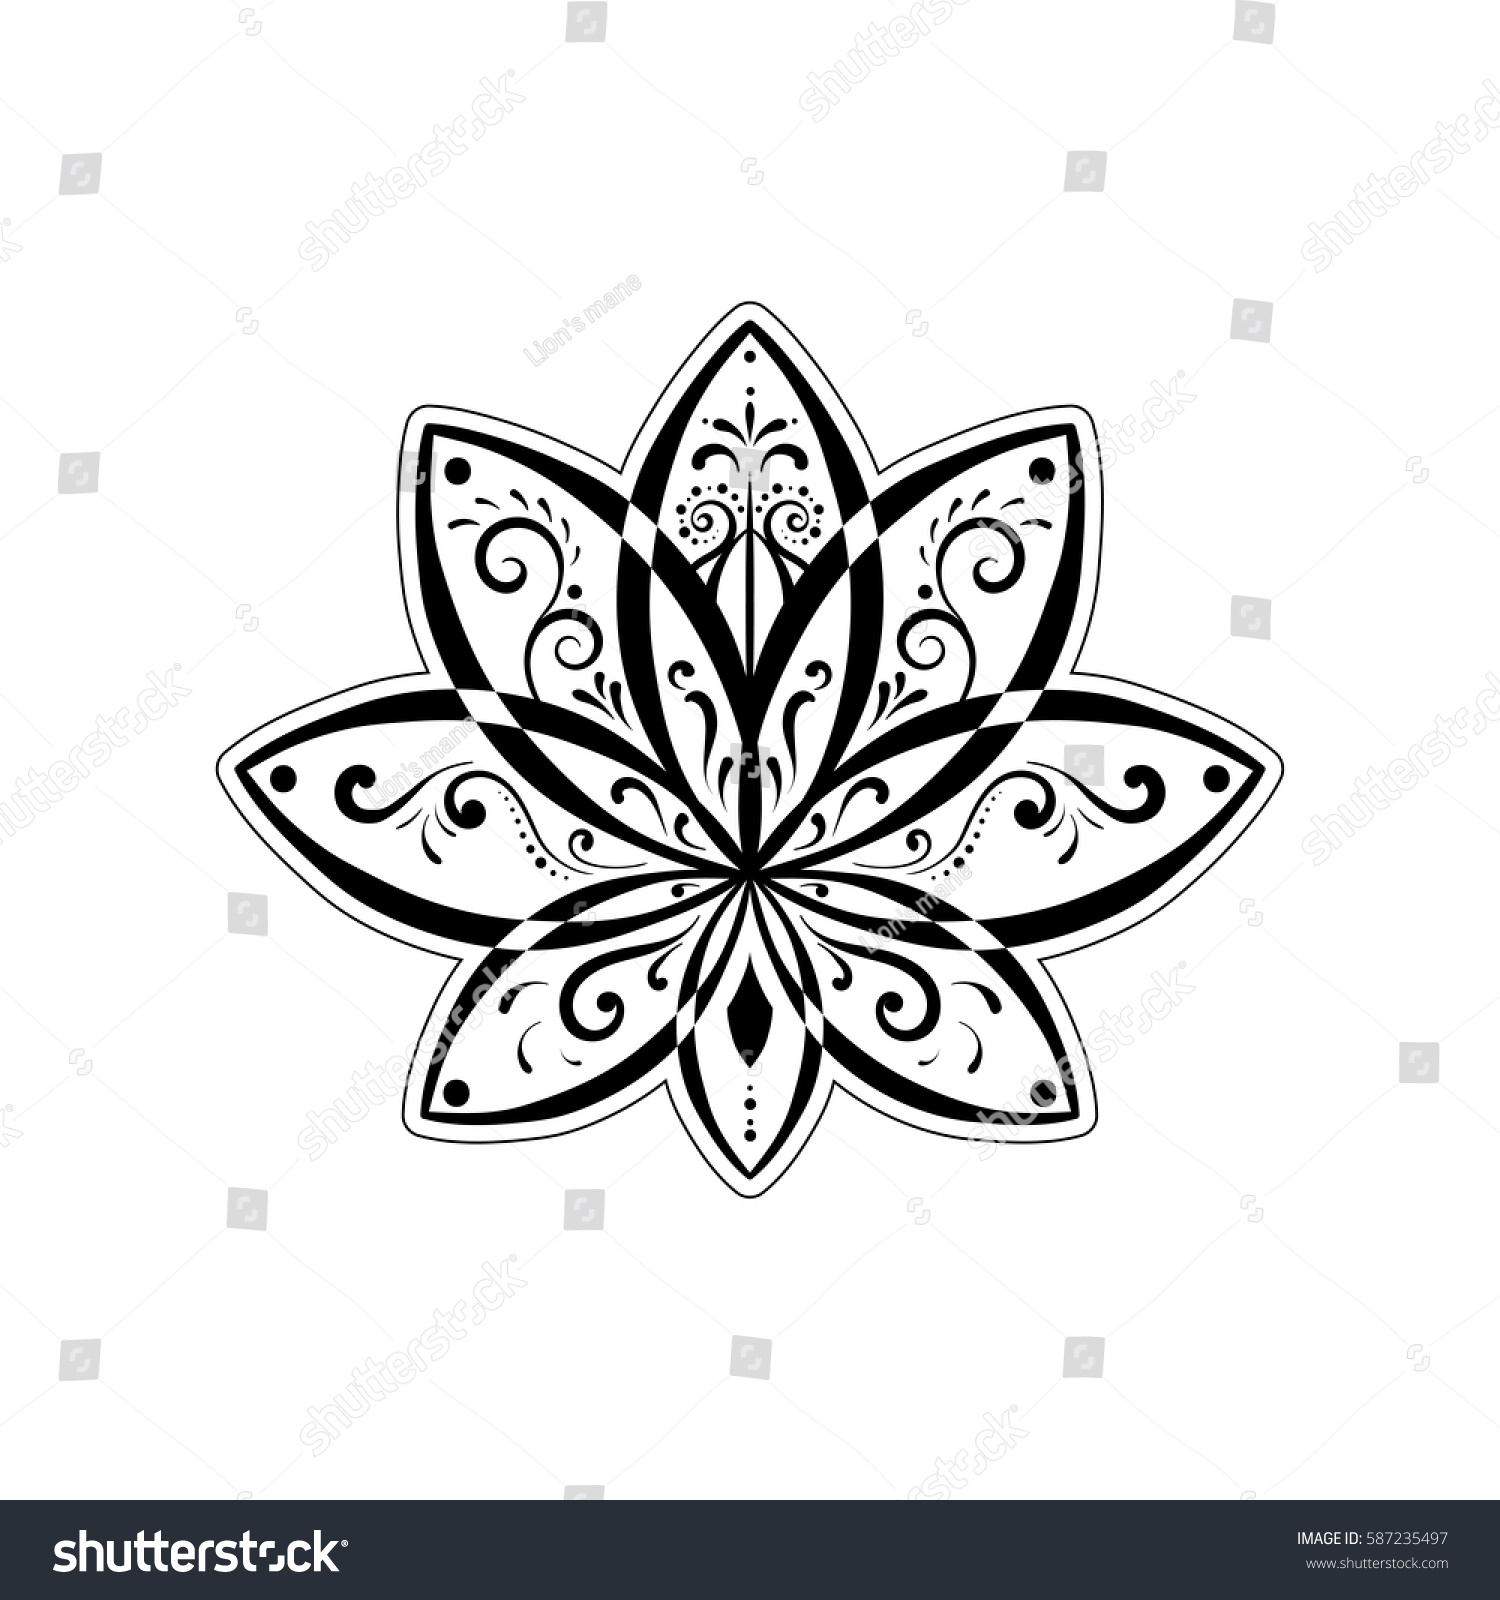 Vector ornamental lotus flower water lily stock vector royalty free vector ornamental lotus flower or water lily ethnic art black hand drawn illustration izmirmasajfo